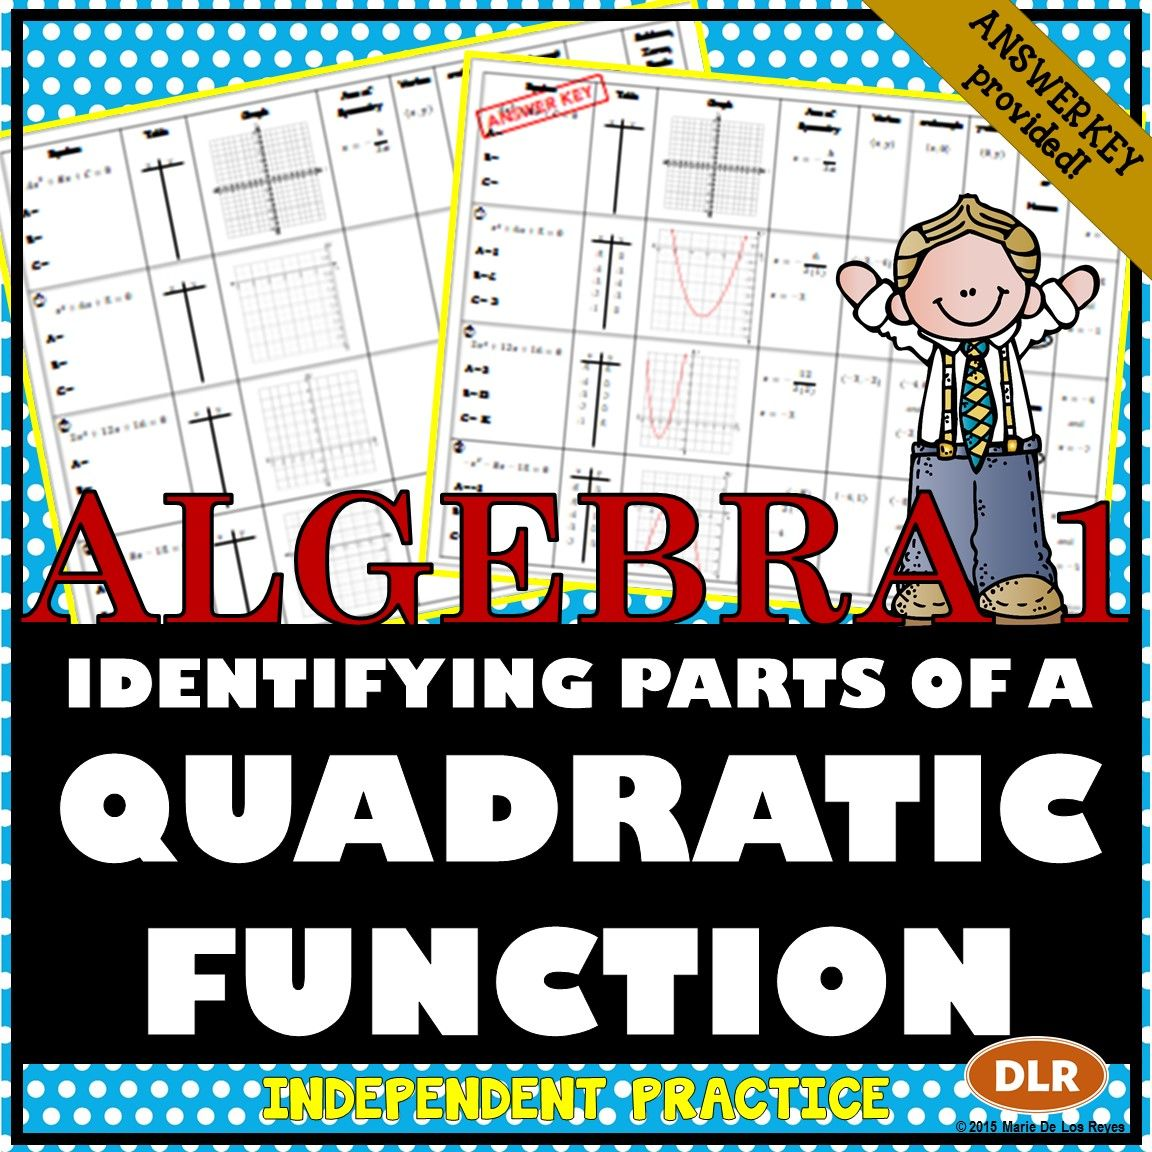 Identifying the parts of a quadratic functions worksheet identifying parts of a quadratic function worksheet great complement to an introductory lesson on quadratic functions nvjuhfo Image collections